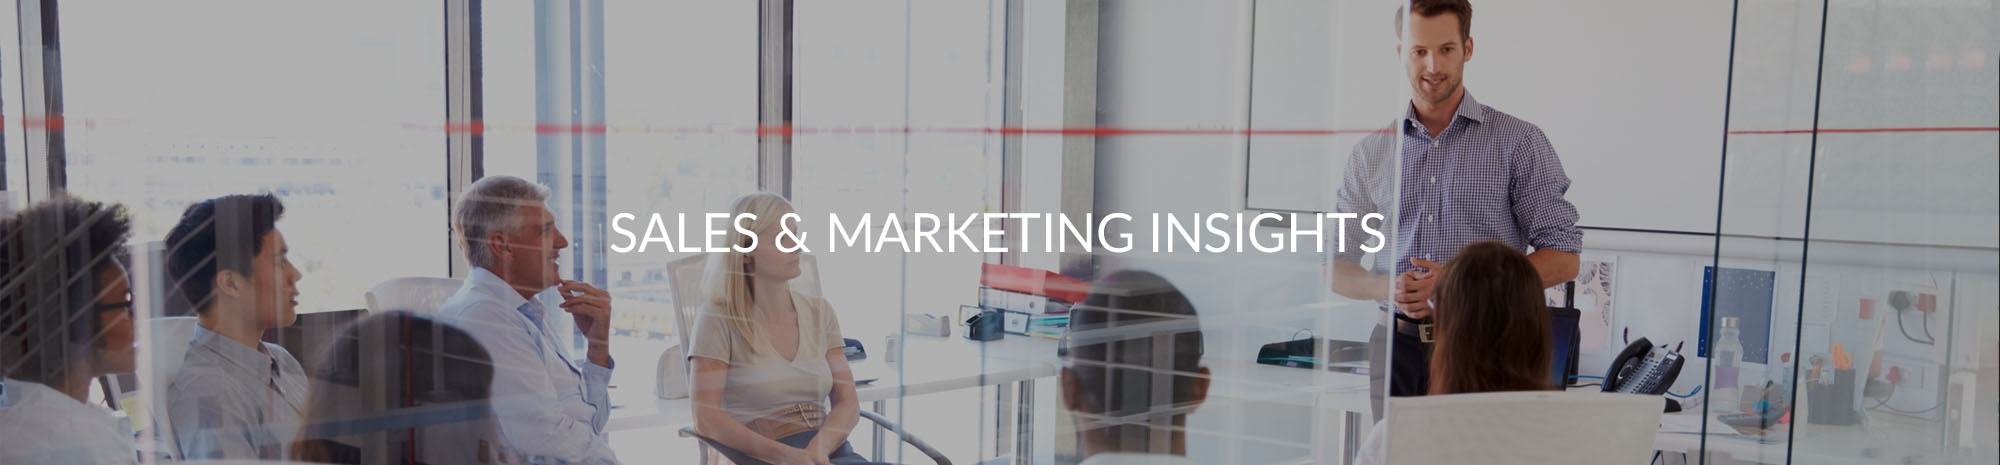 Sales and Marketing Insights